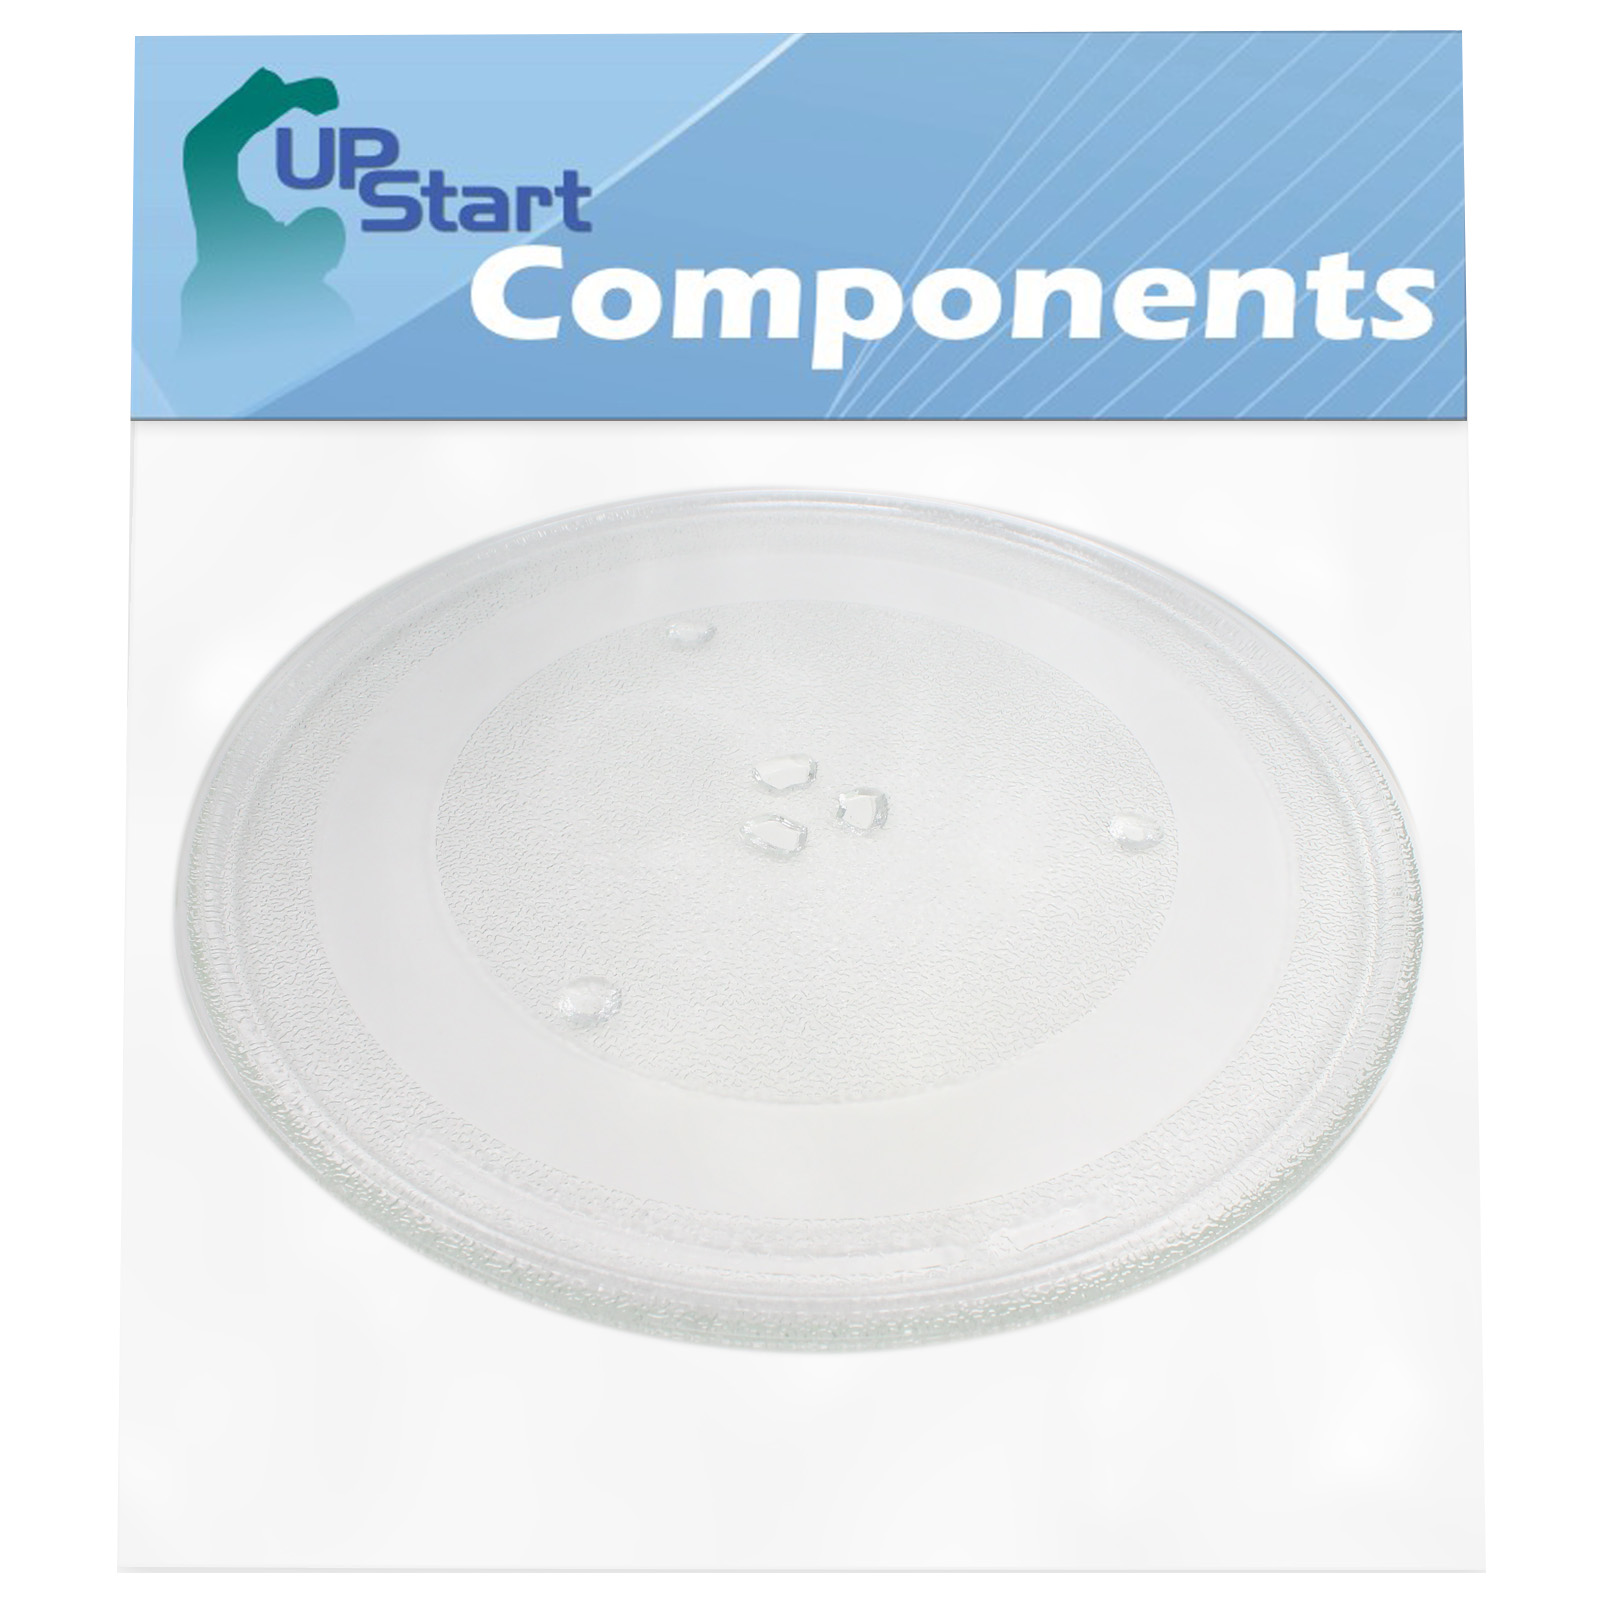 5304464116 microwave glass turntable plate replacement for frigidaire ffmv164lsa compatible with 5304509621 13 5 inch glass tray